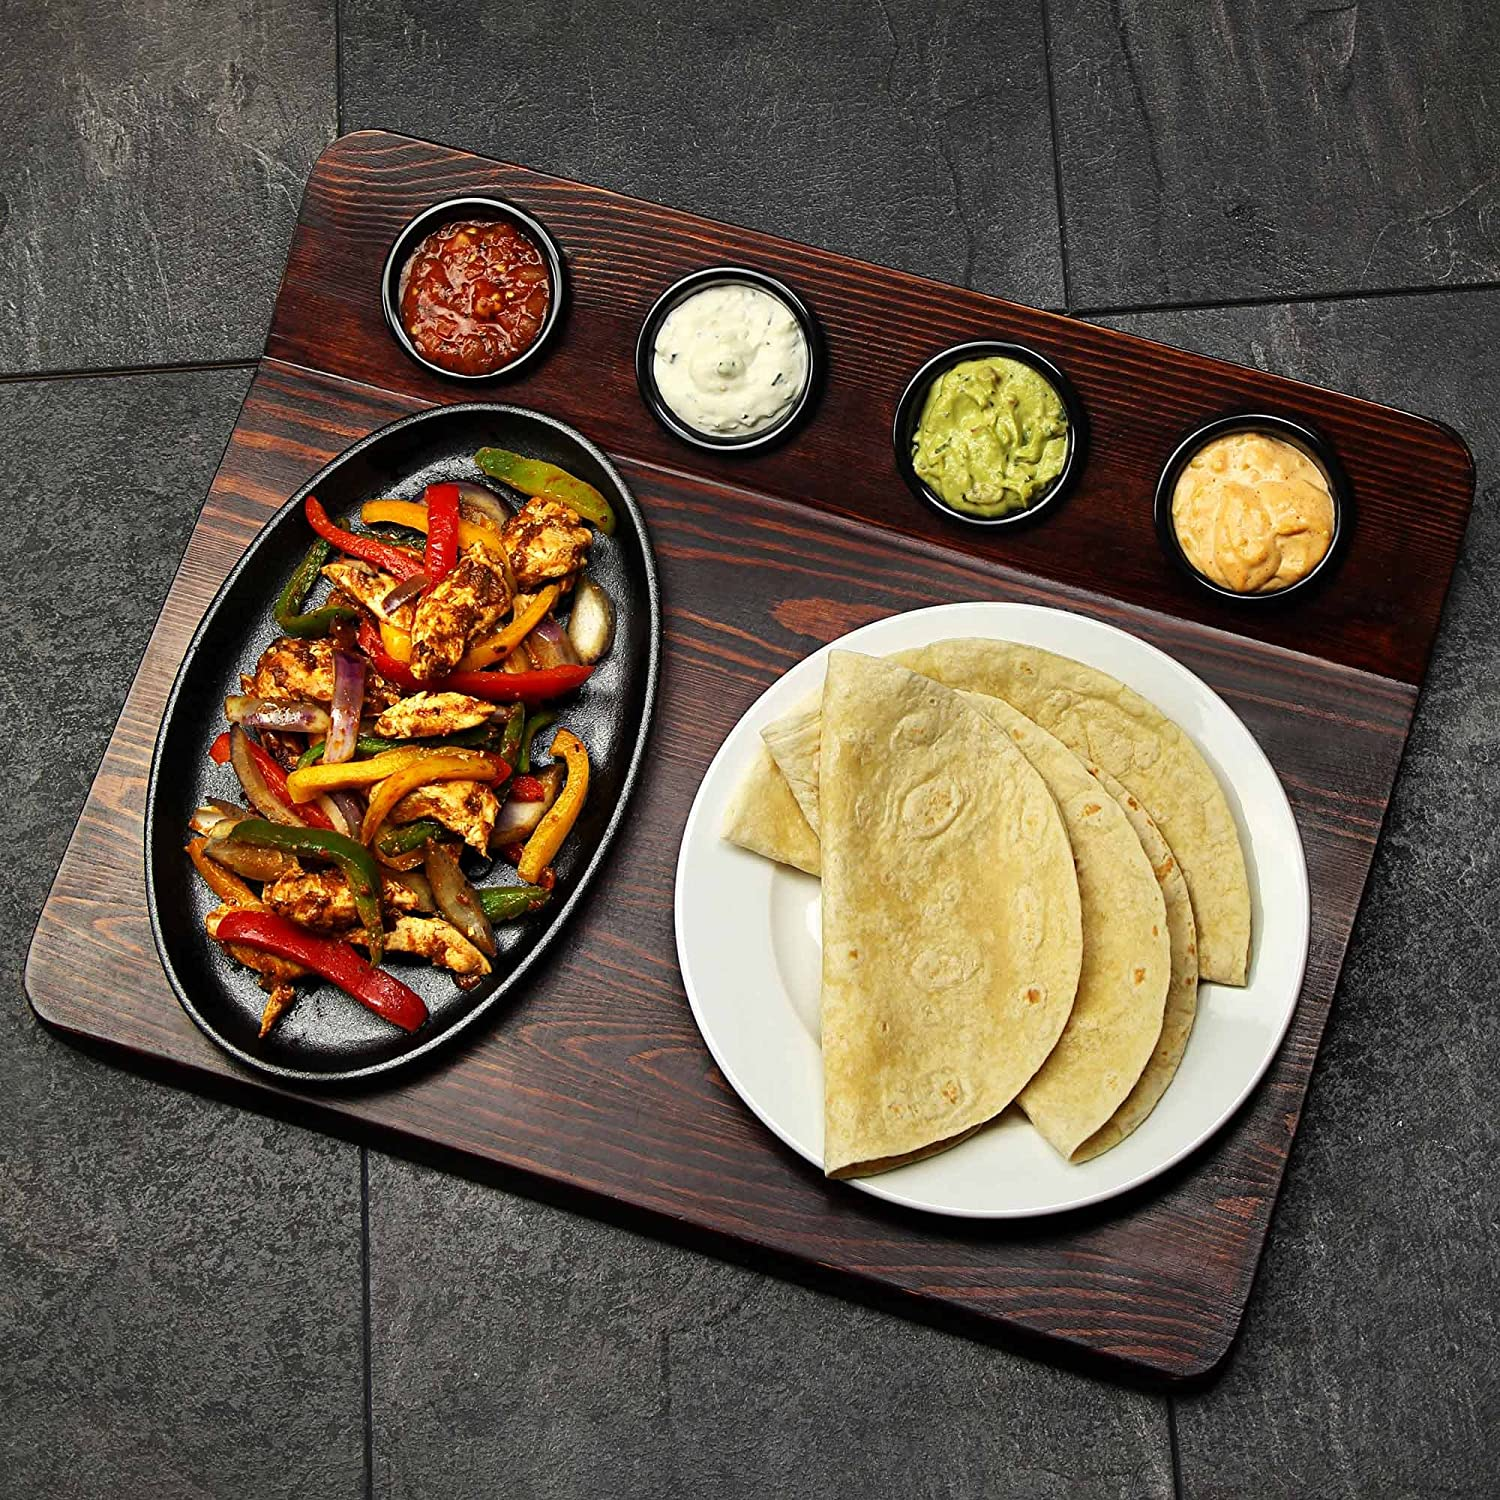 Fajita Serving Board with Sizzle Platter and 4 Ramekins for Presenting Fajitas from Oven to Table dine@drinkstuff